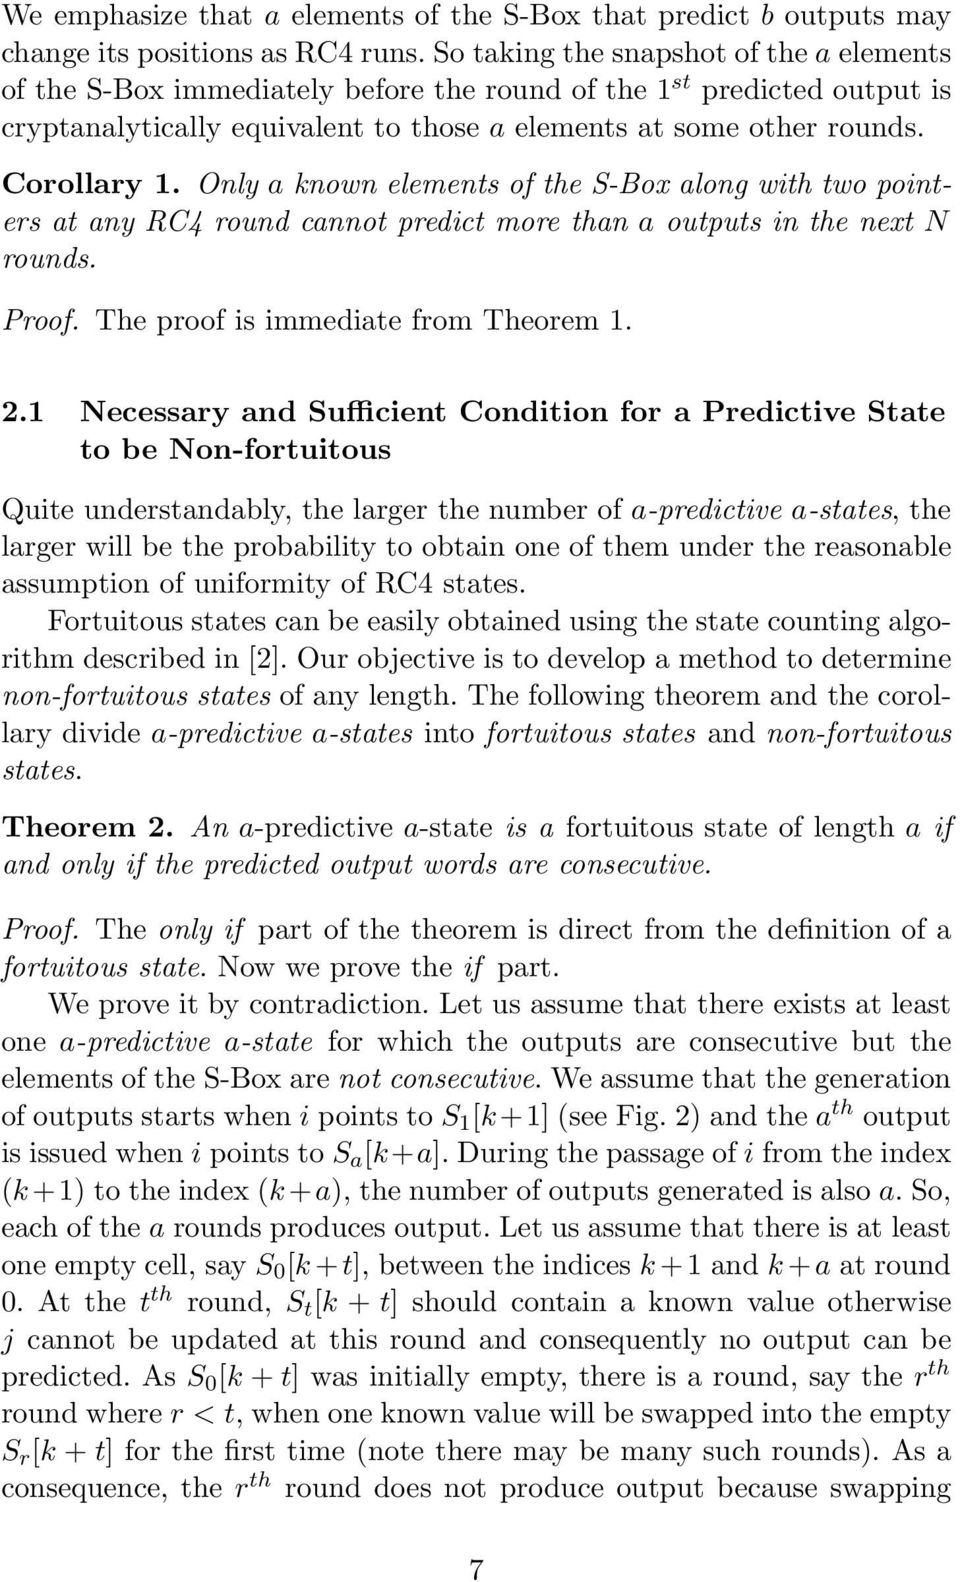 Only a known elements of the S-Box along with two pointers at any RC4 round cannot predict more than a outputs in the next N rounds. Proof. The proof is immediate from Theorem 1. 2.